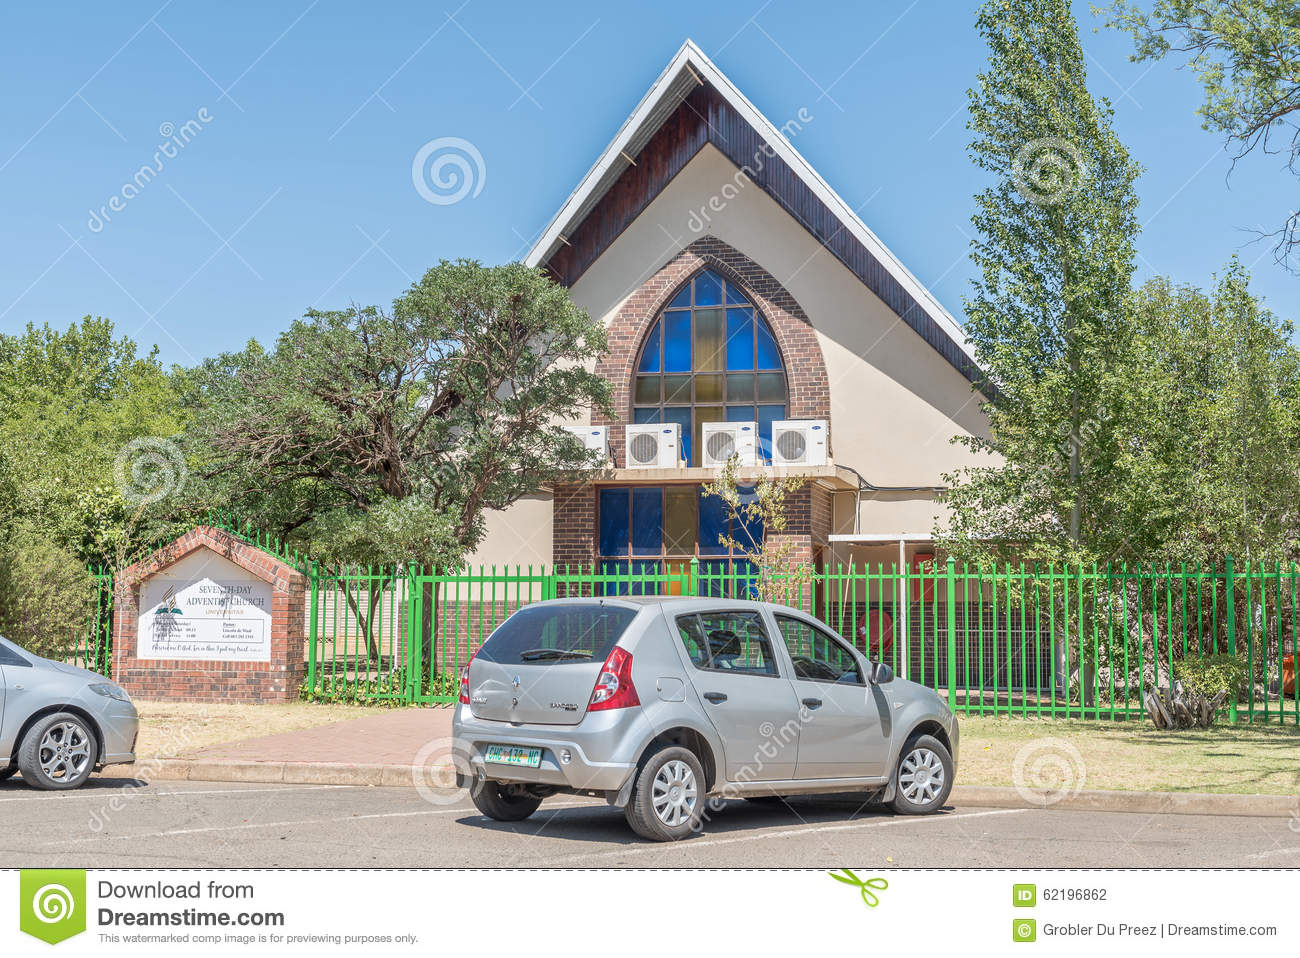 Seventh day adventist dating south africa